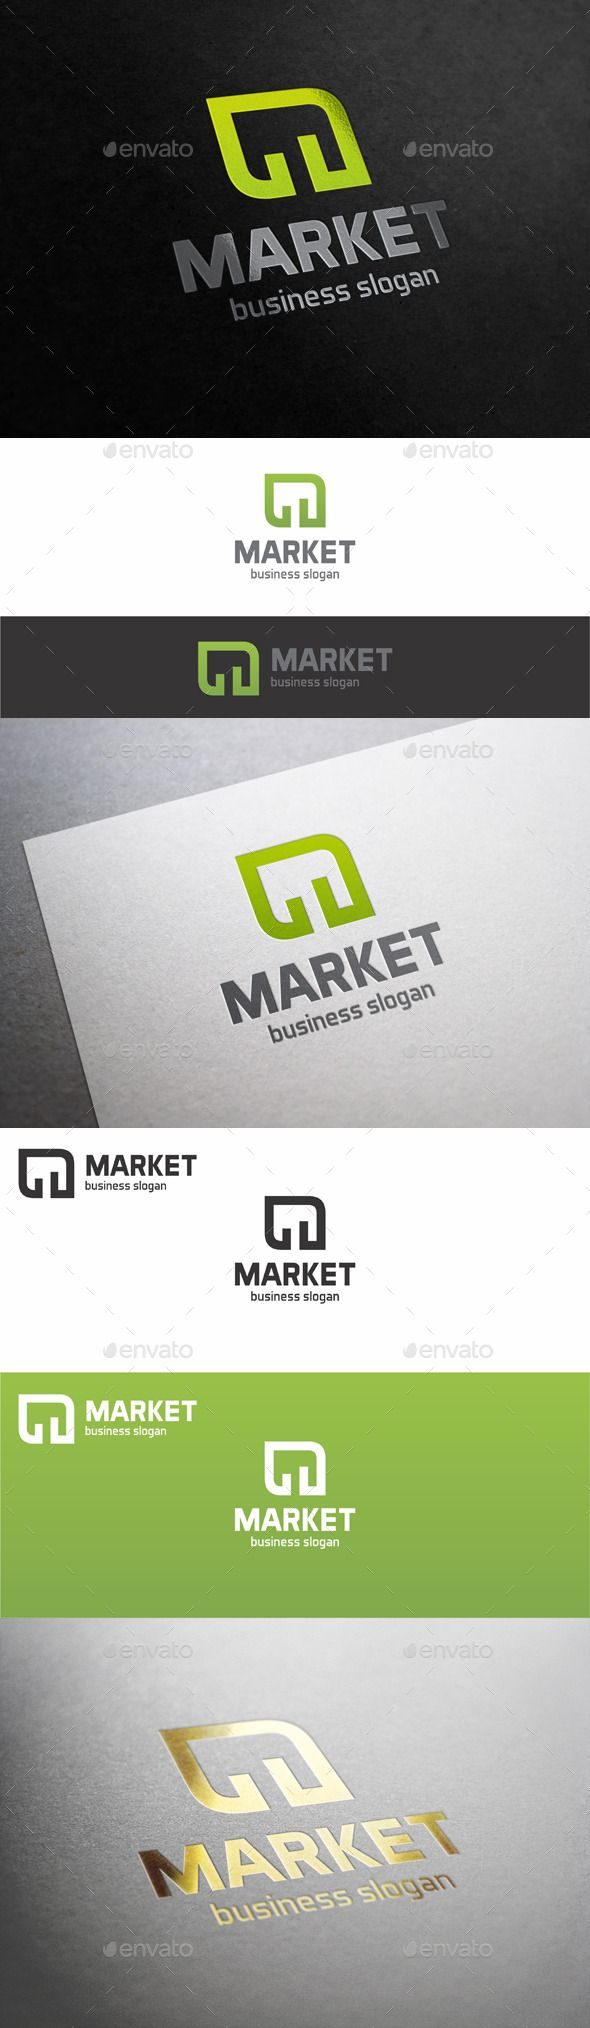 Market Stats Green Leaf Logo - Market Graph Stats Green Leaf Logo Template – Consulting, Marketing, Capital or Financial Logo. Is a logo that can be used in marketing and consulting companies, in companies that provide service statistics ;  If you're in SEO , PPC or conversion analysis – then this is an ideal mark.